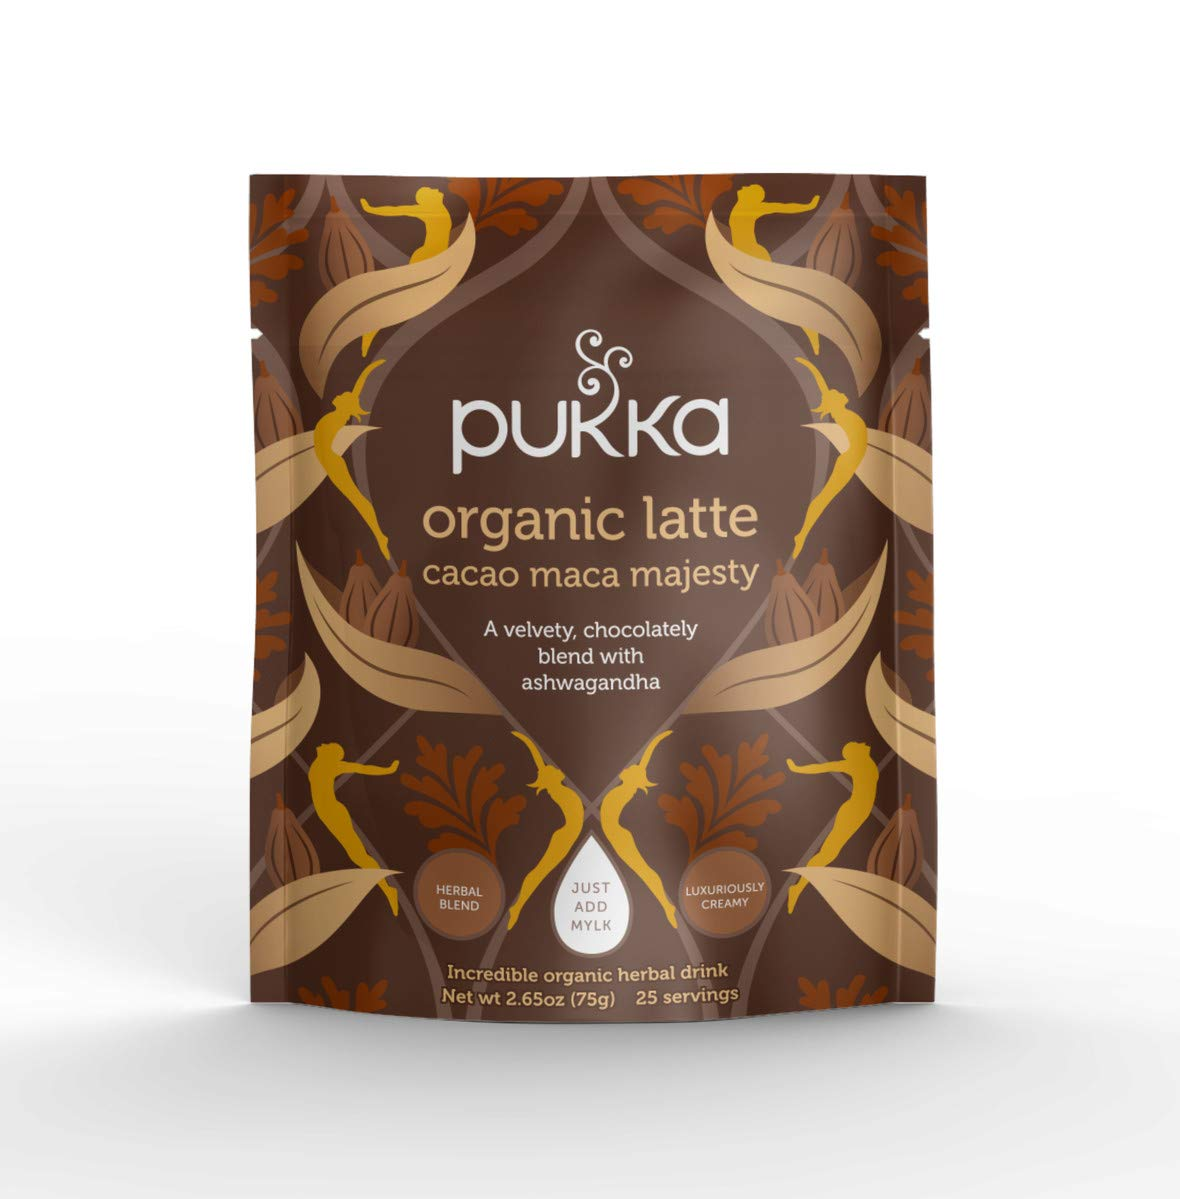 Pukka Cacao Maca Majesty, Organic Herbal Latte with Ashwagandha, 75g by Pukka Herbs